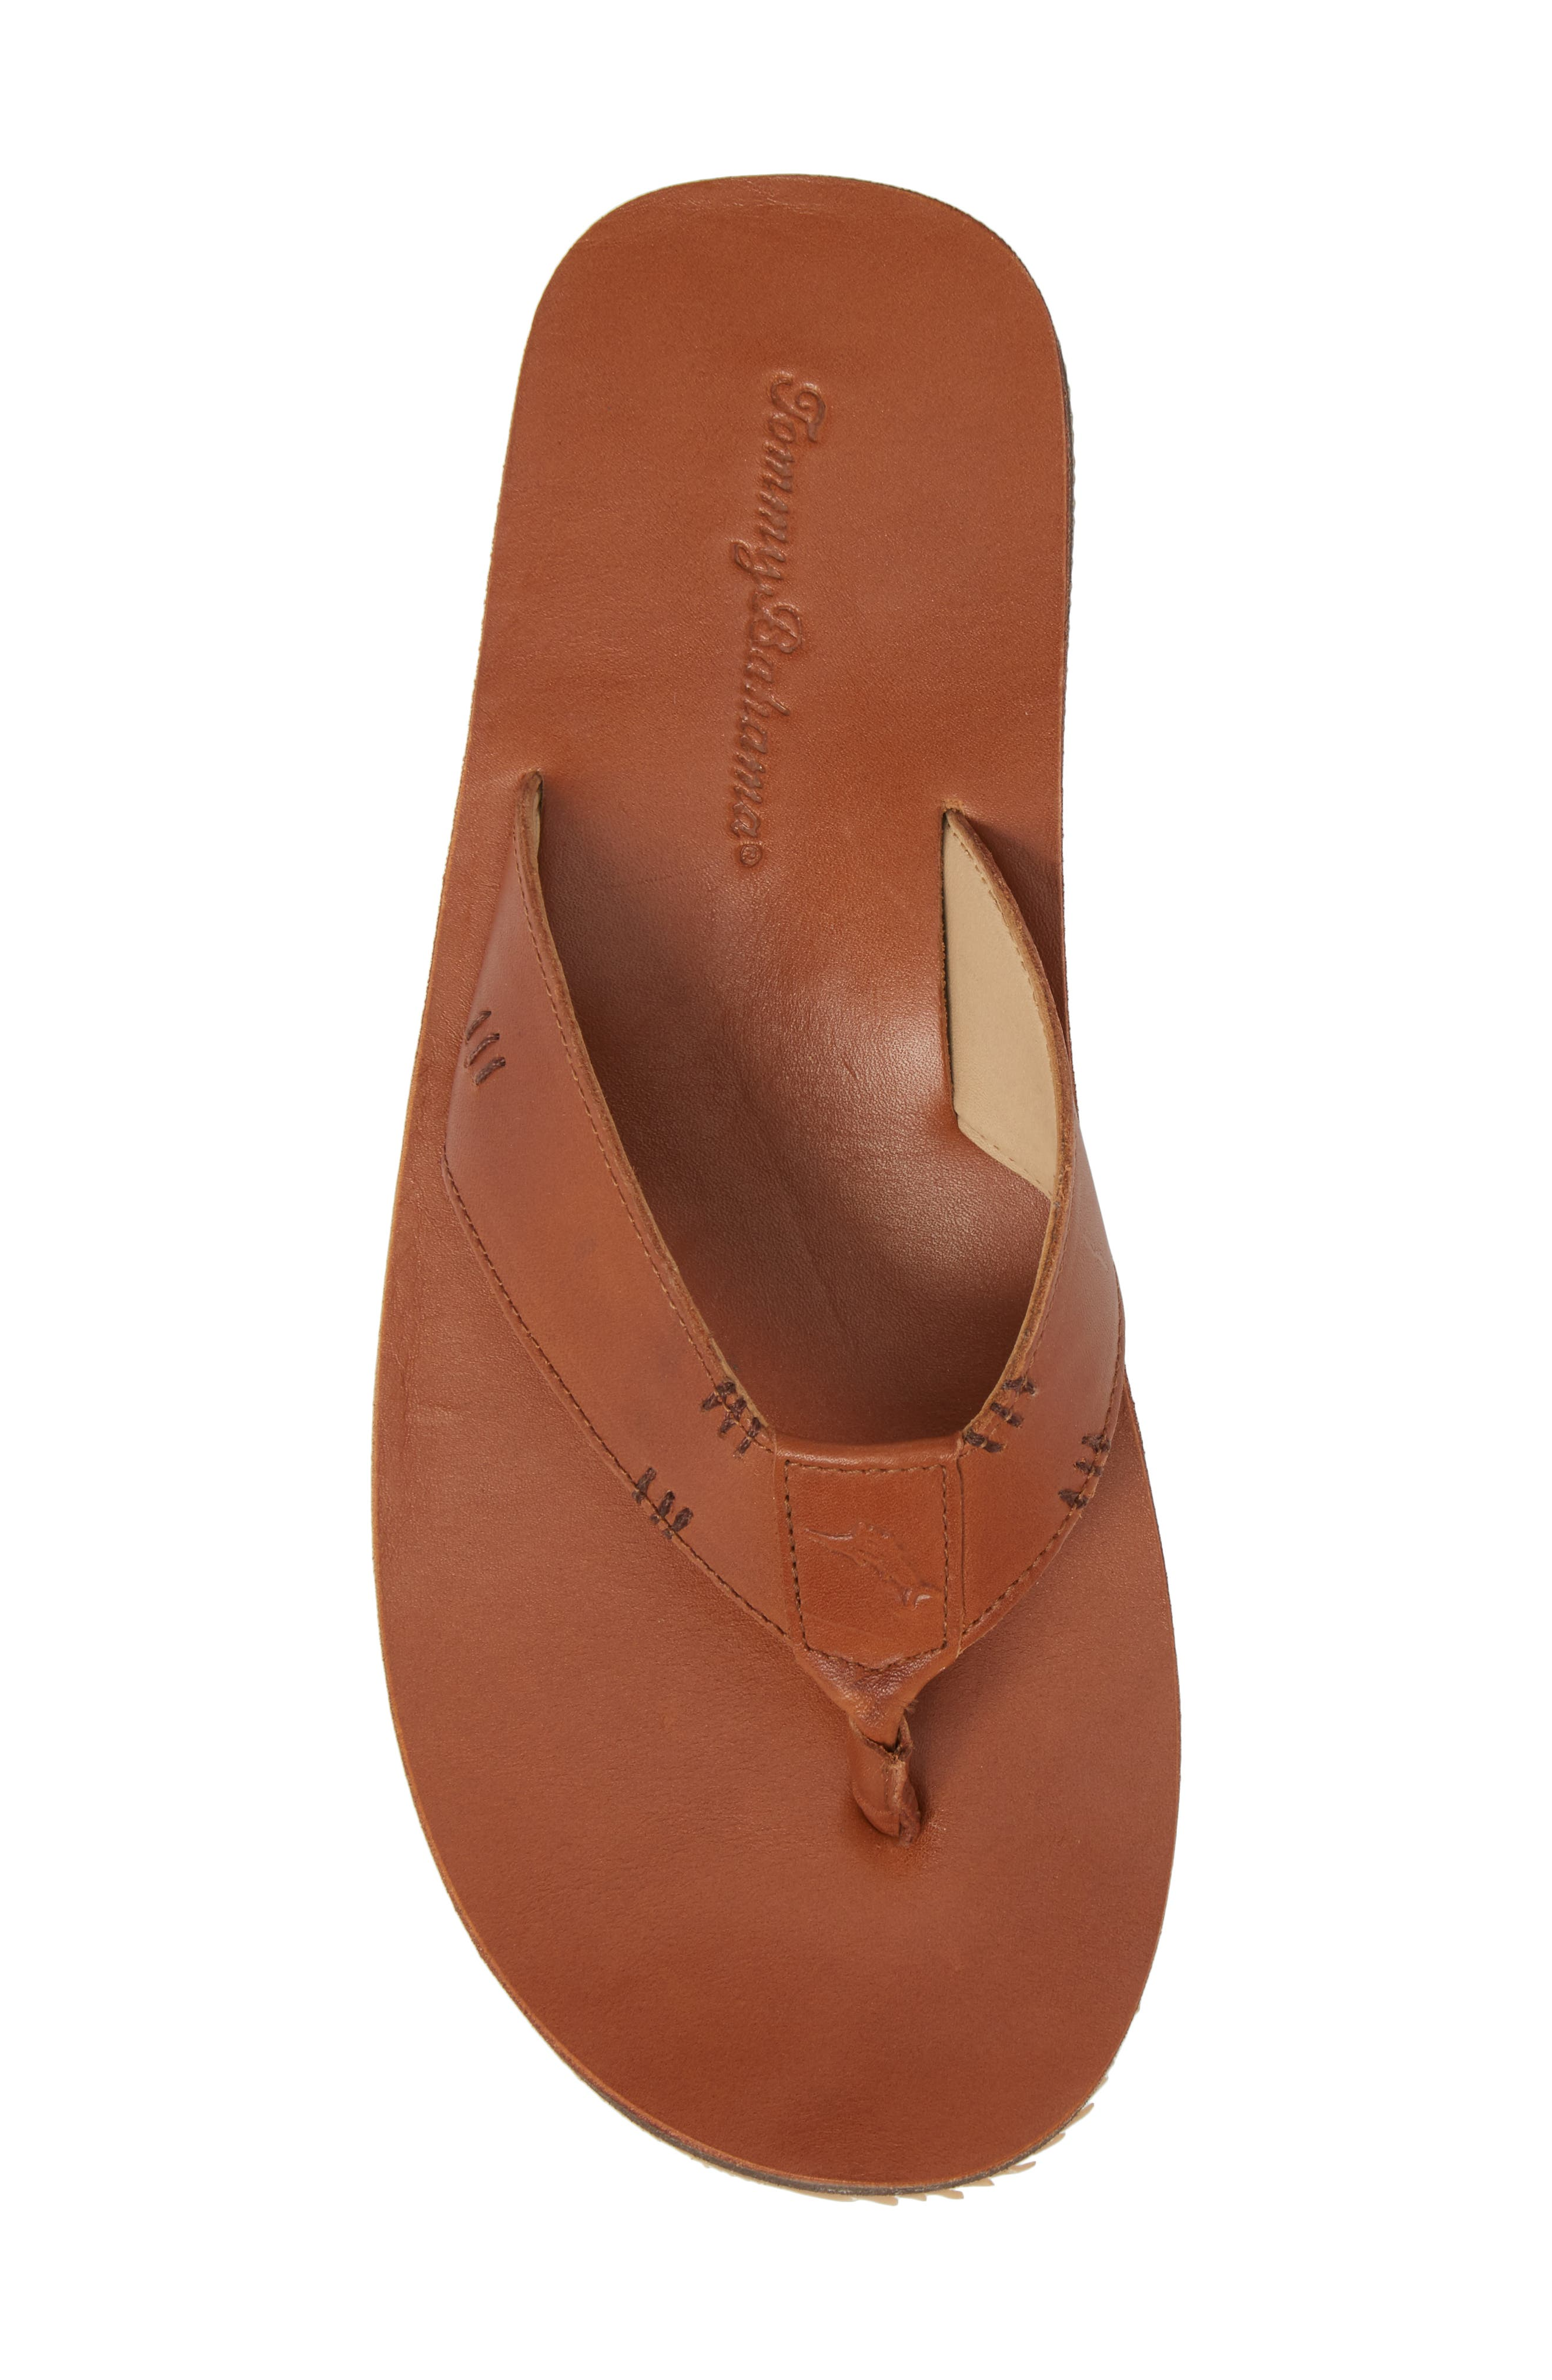 Adderly Flip Flop,                             Alternate thumbnail 5, color,                             Tan Leather